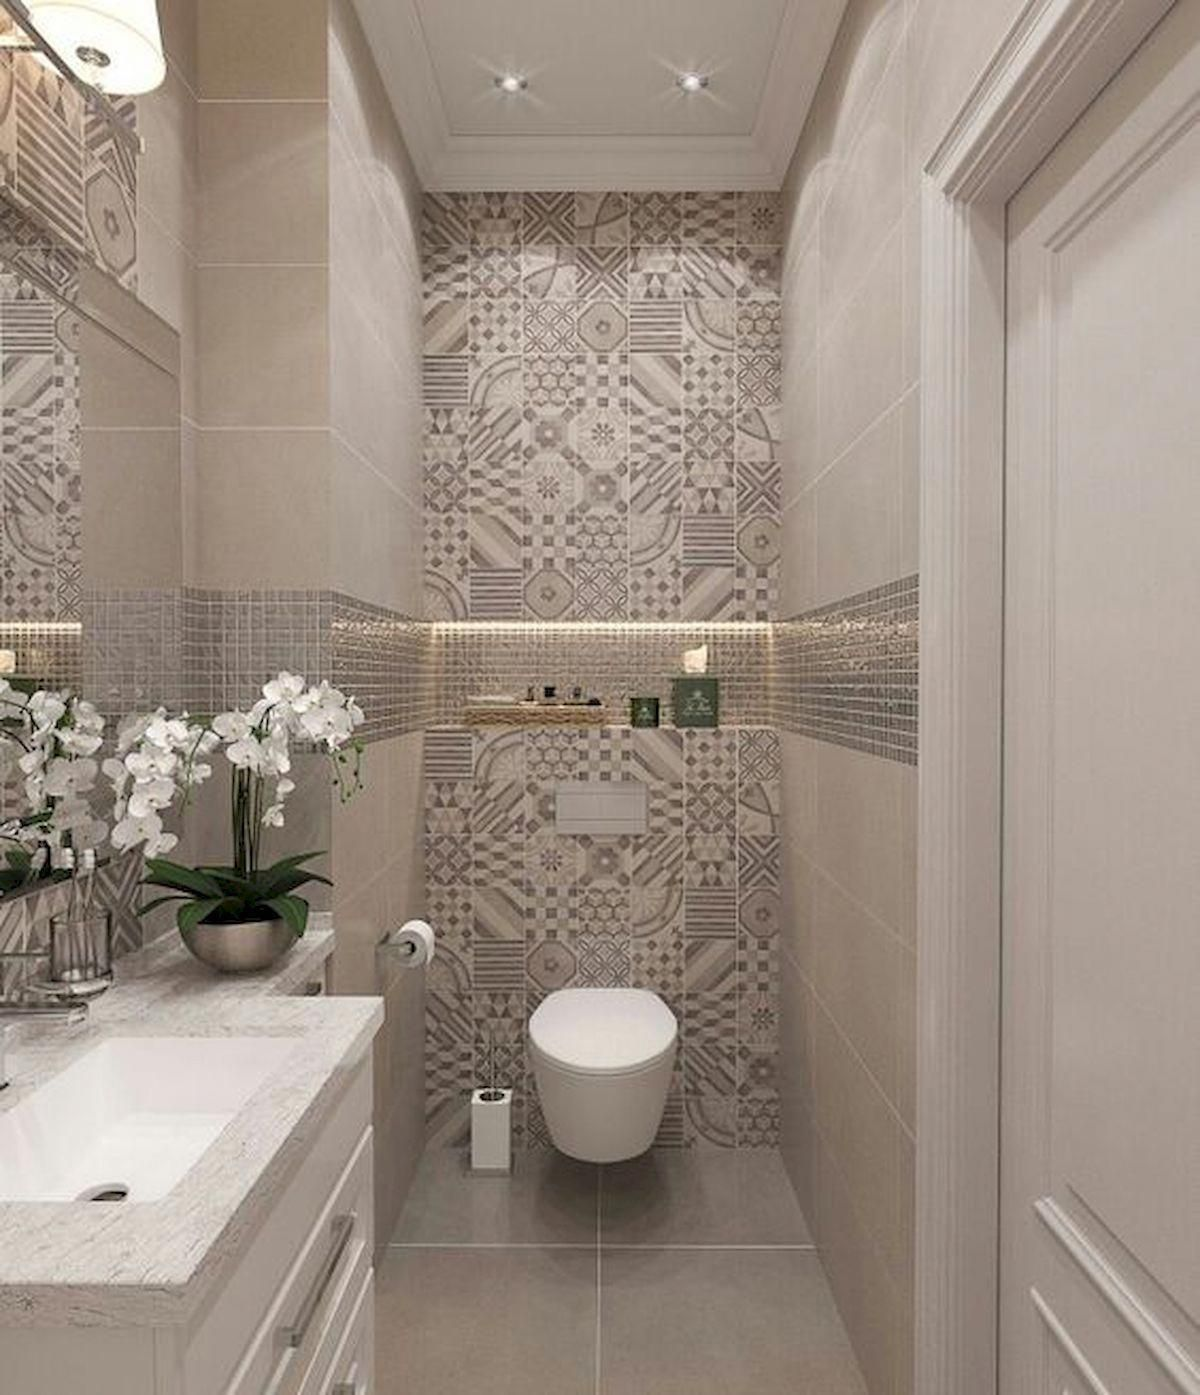 exhibit your dishes our 10 decorating ideas bathroom on bathroom renovation ideas for small bathrooms id=34032